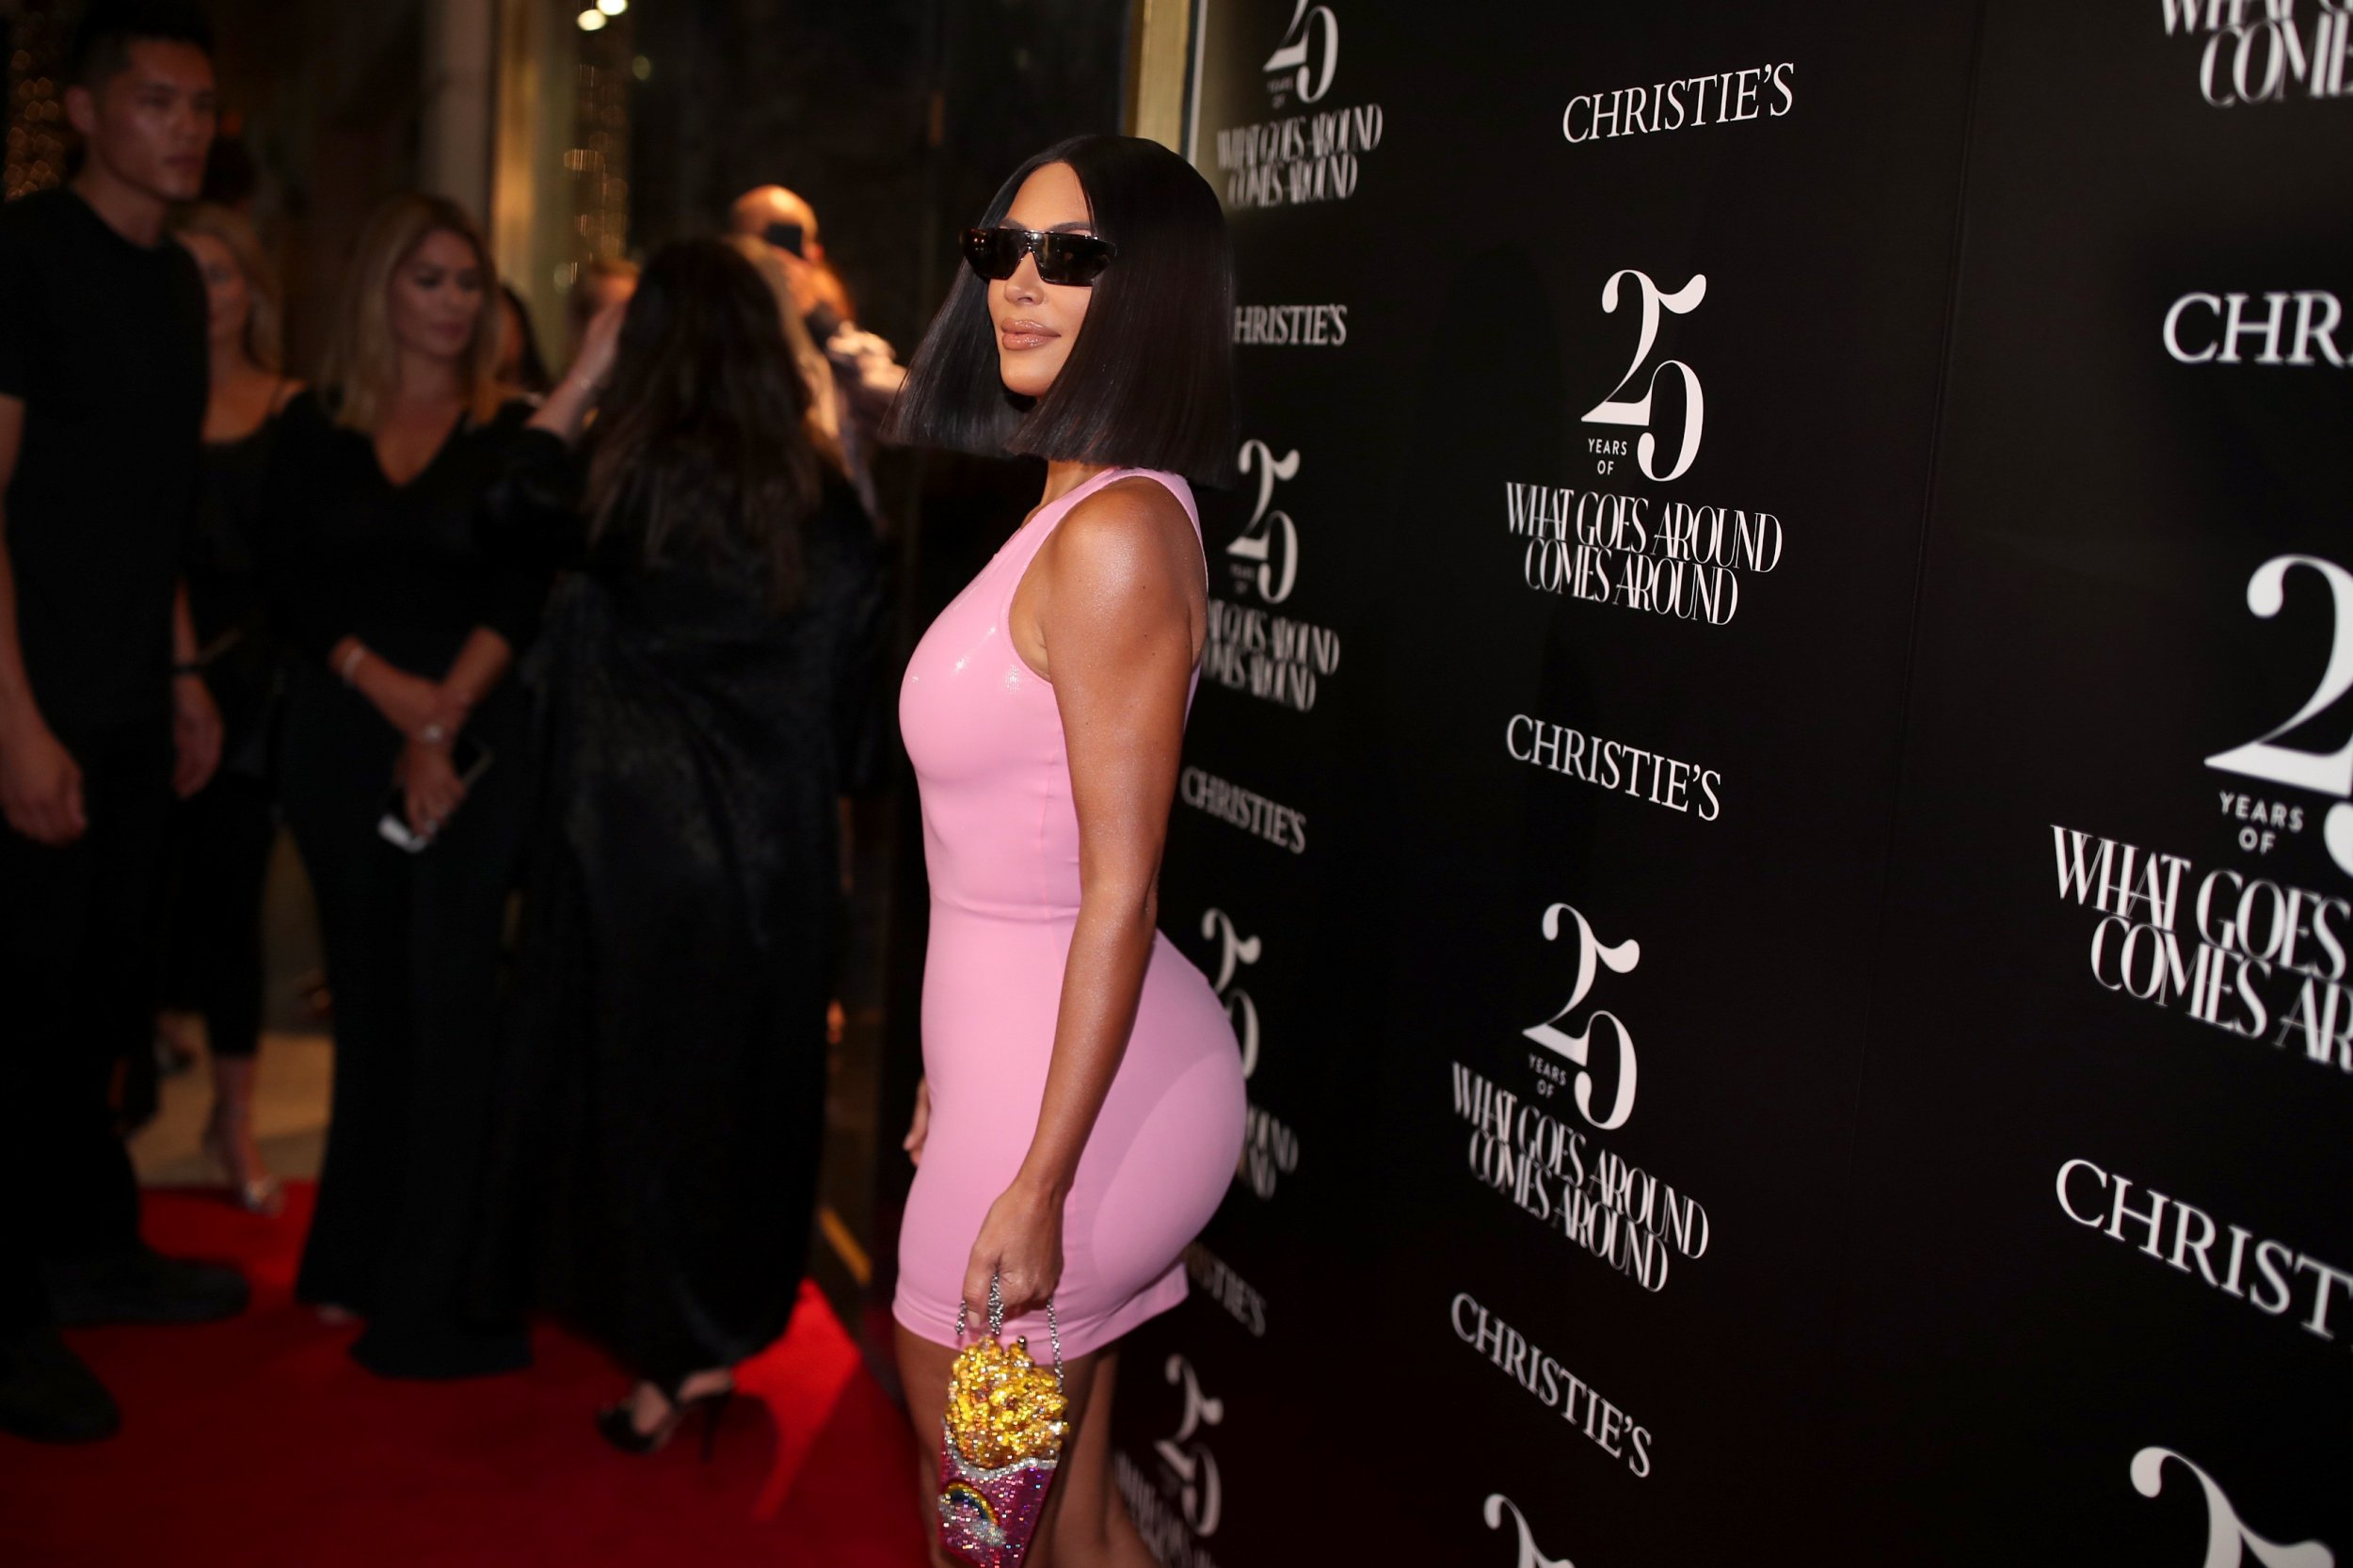 Viral Twitter Conspiracy Suggests Kim Kardashian Had an